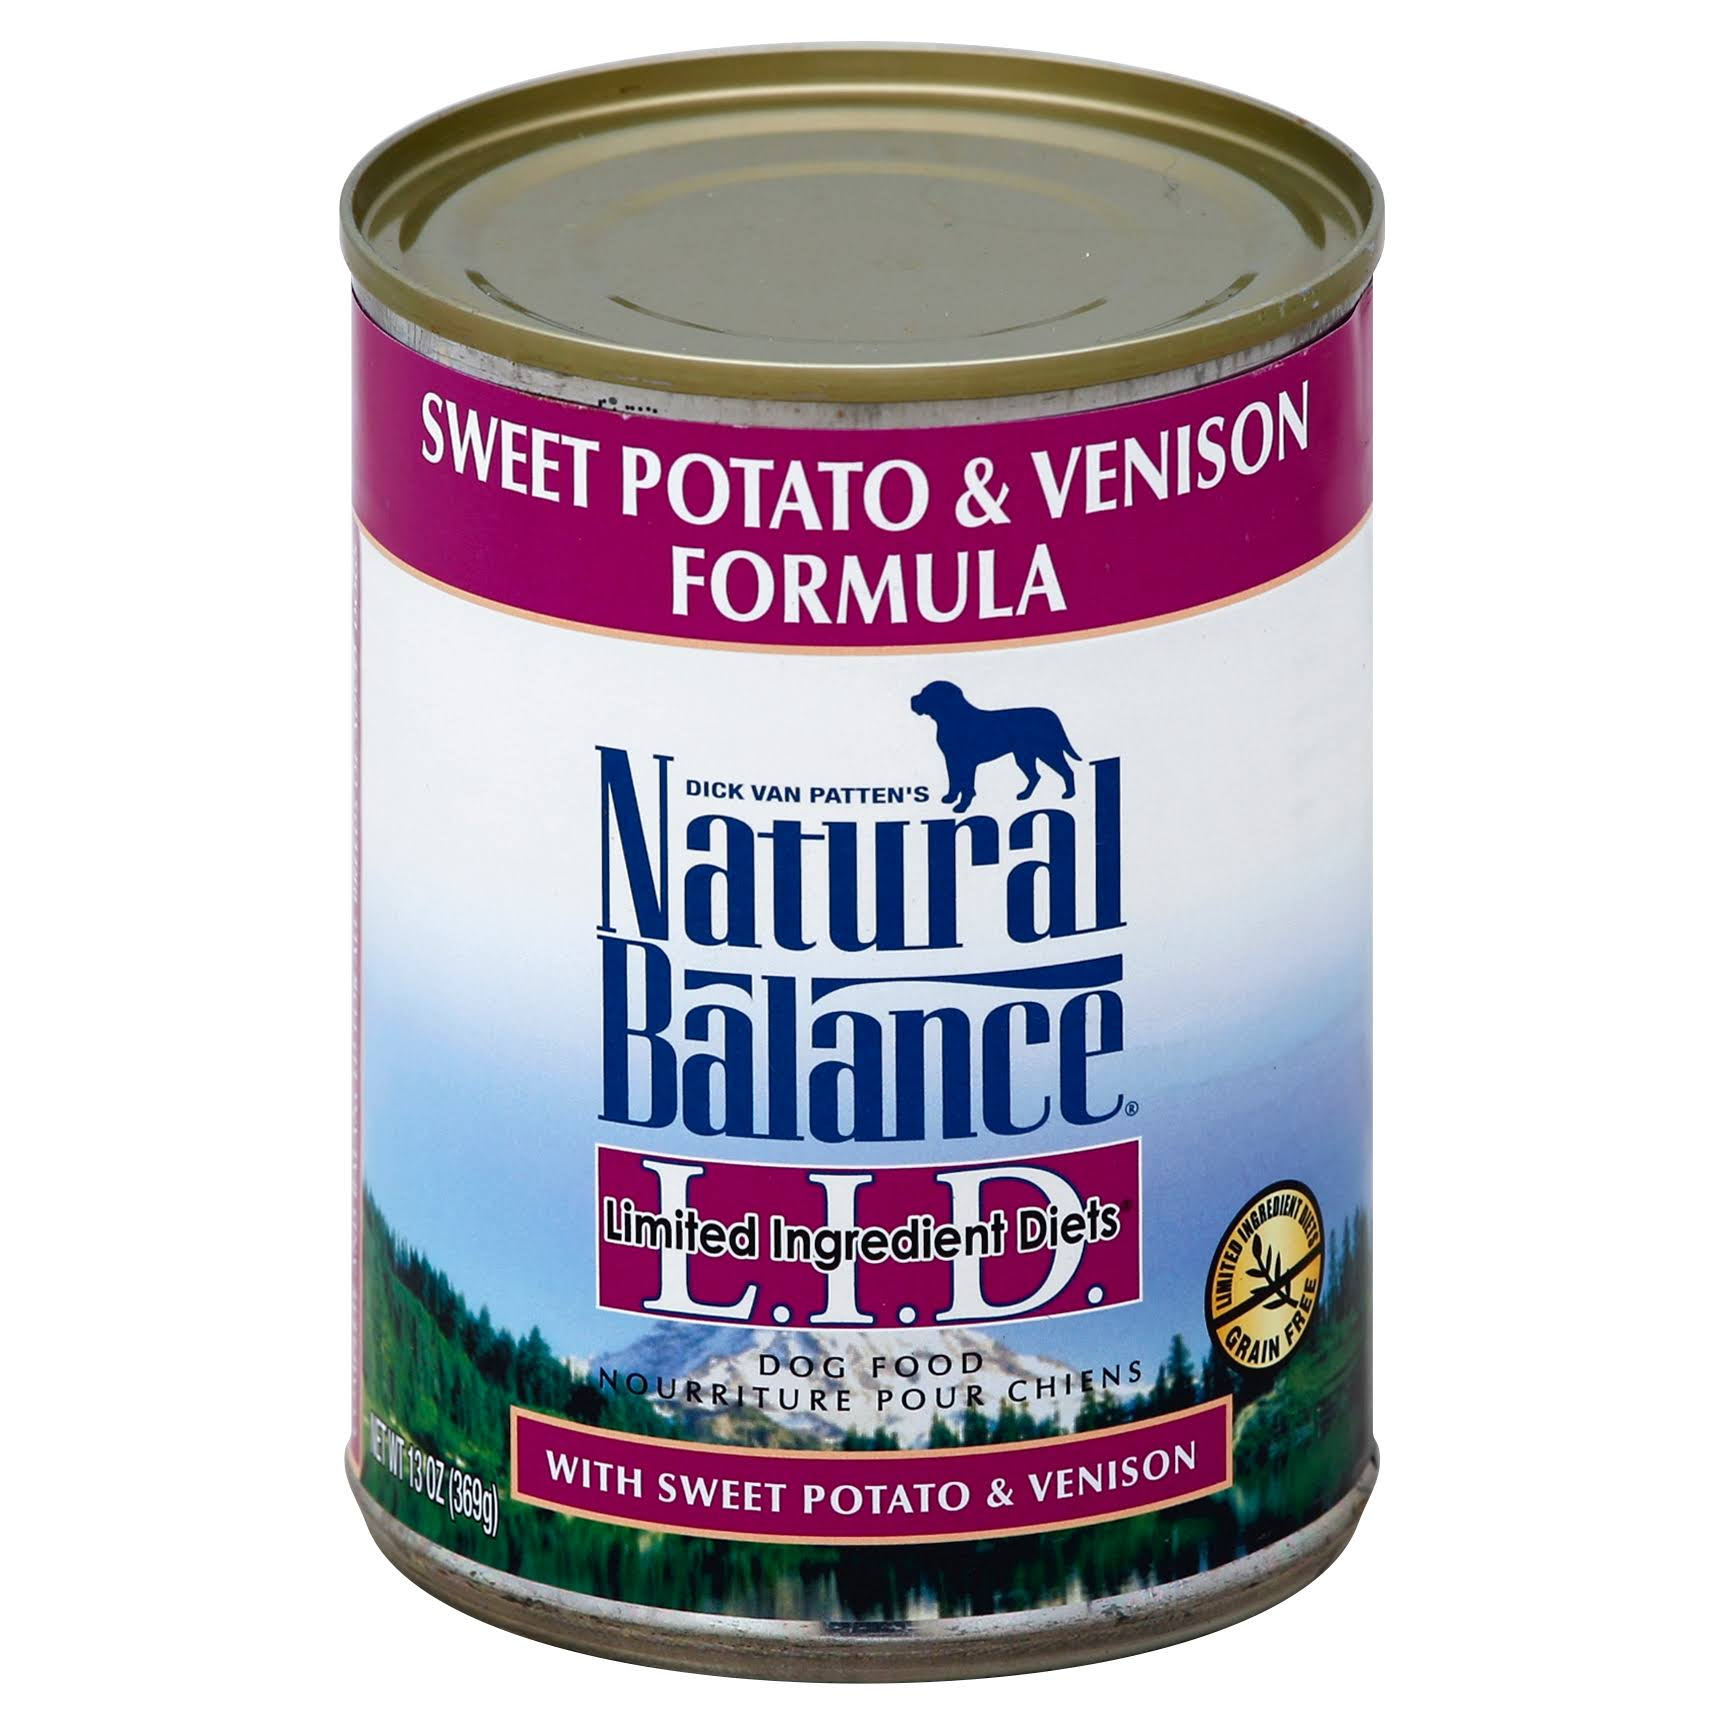 Natural Balance L.I.D. Limited Ingredient Diets Dog Food, Sweet Potato & Venison Formula - 13 oz